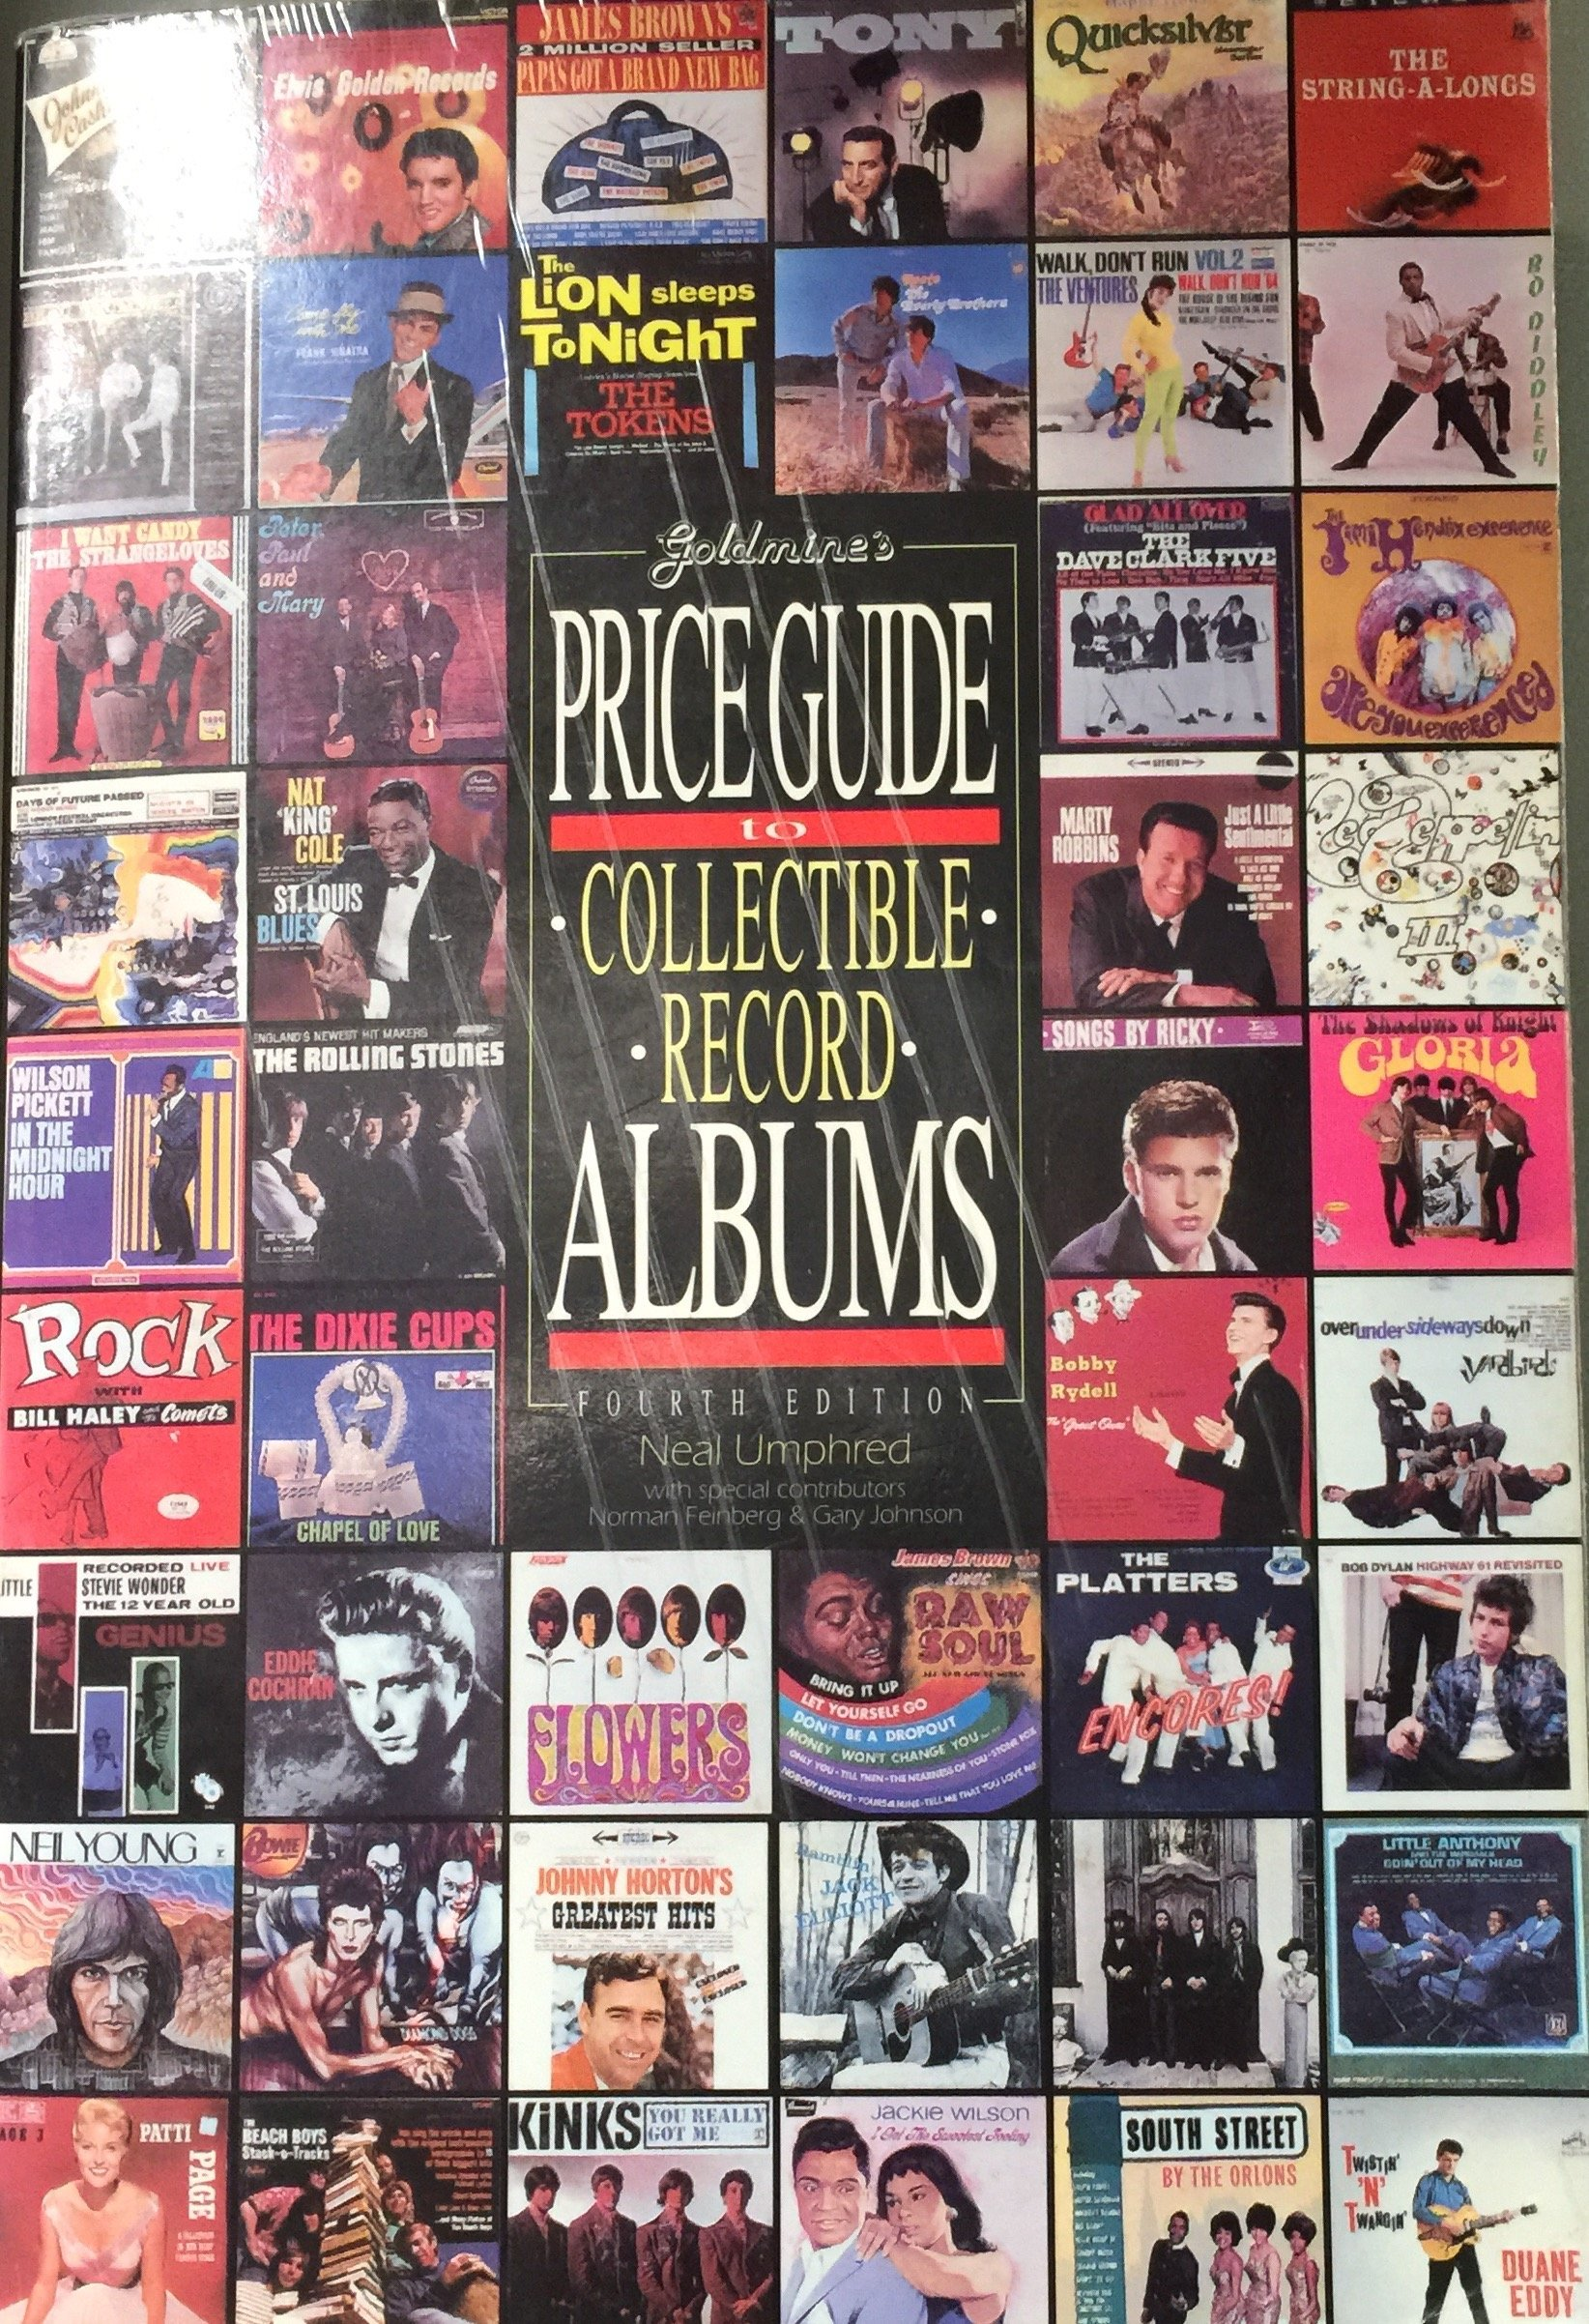 Goldmine's Price Guide to Collectible Record Albums